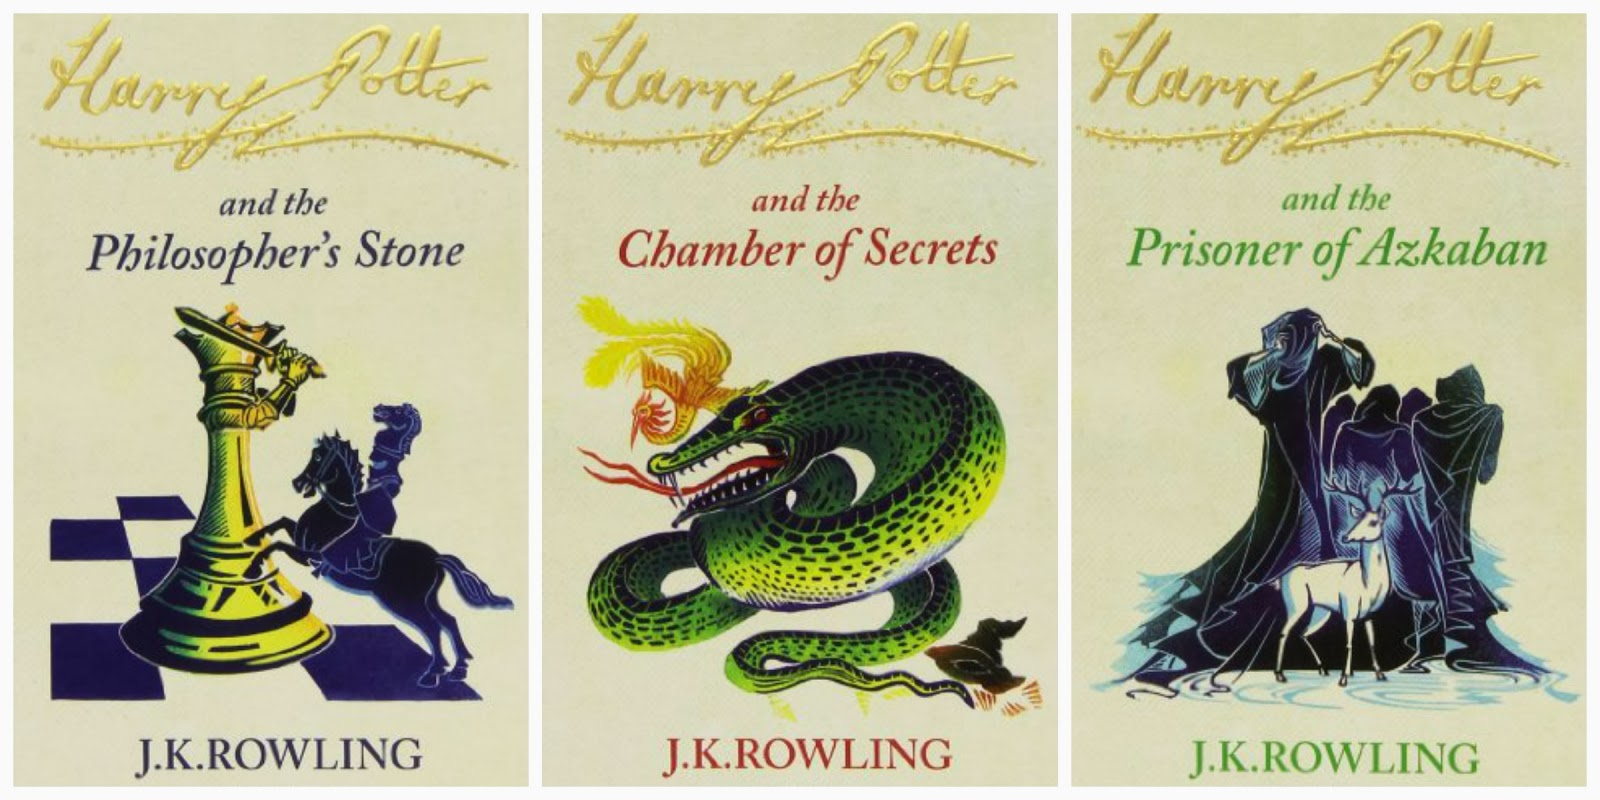 Harry Potter and the Philosopher's Stone / Chamber of Secrets / Prisoner of Azkaban by J.K. Rowling